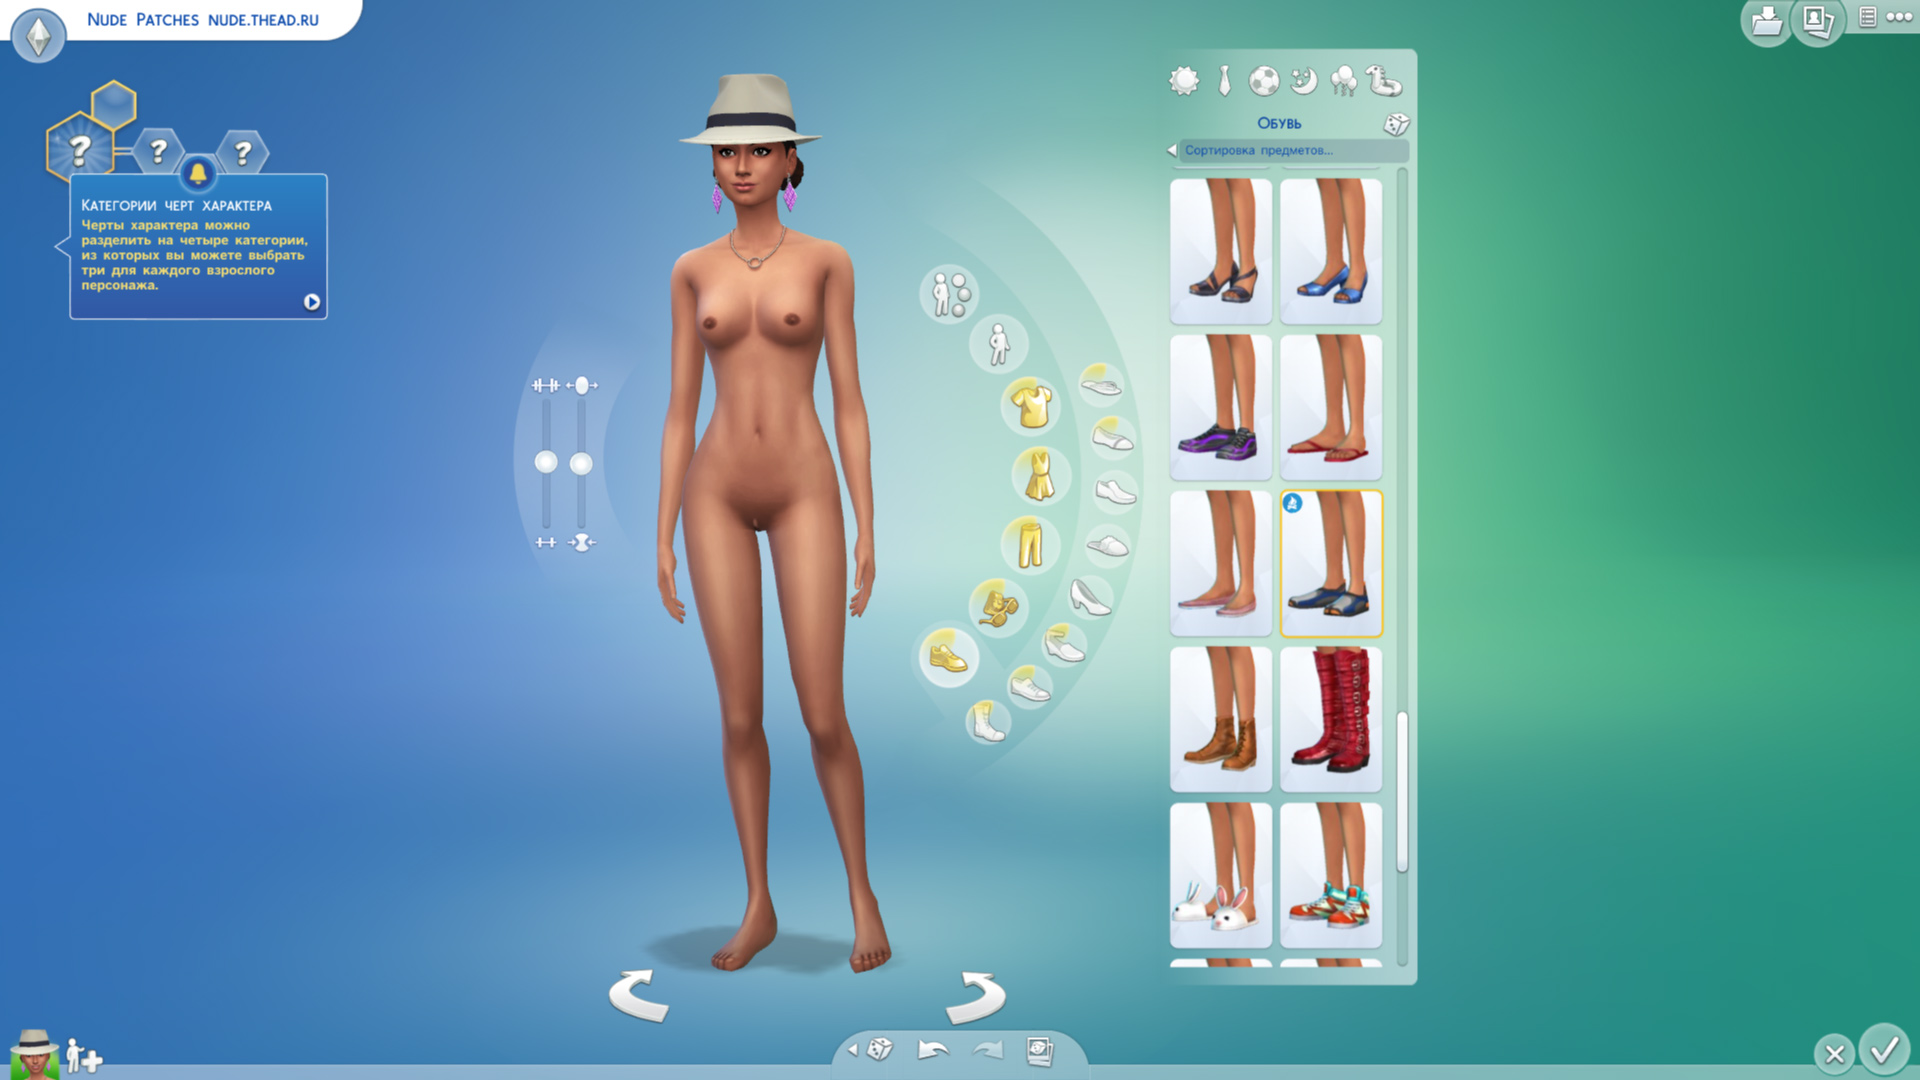 The sims nude patch video naked clips